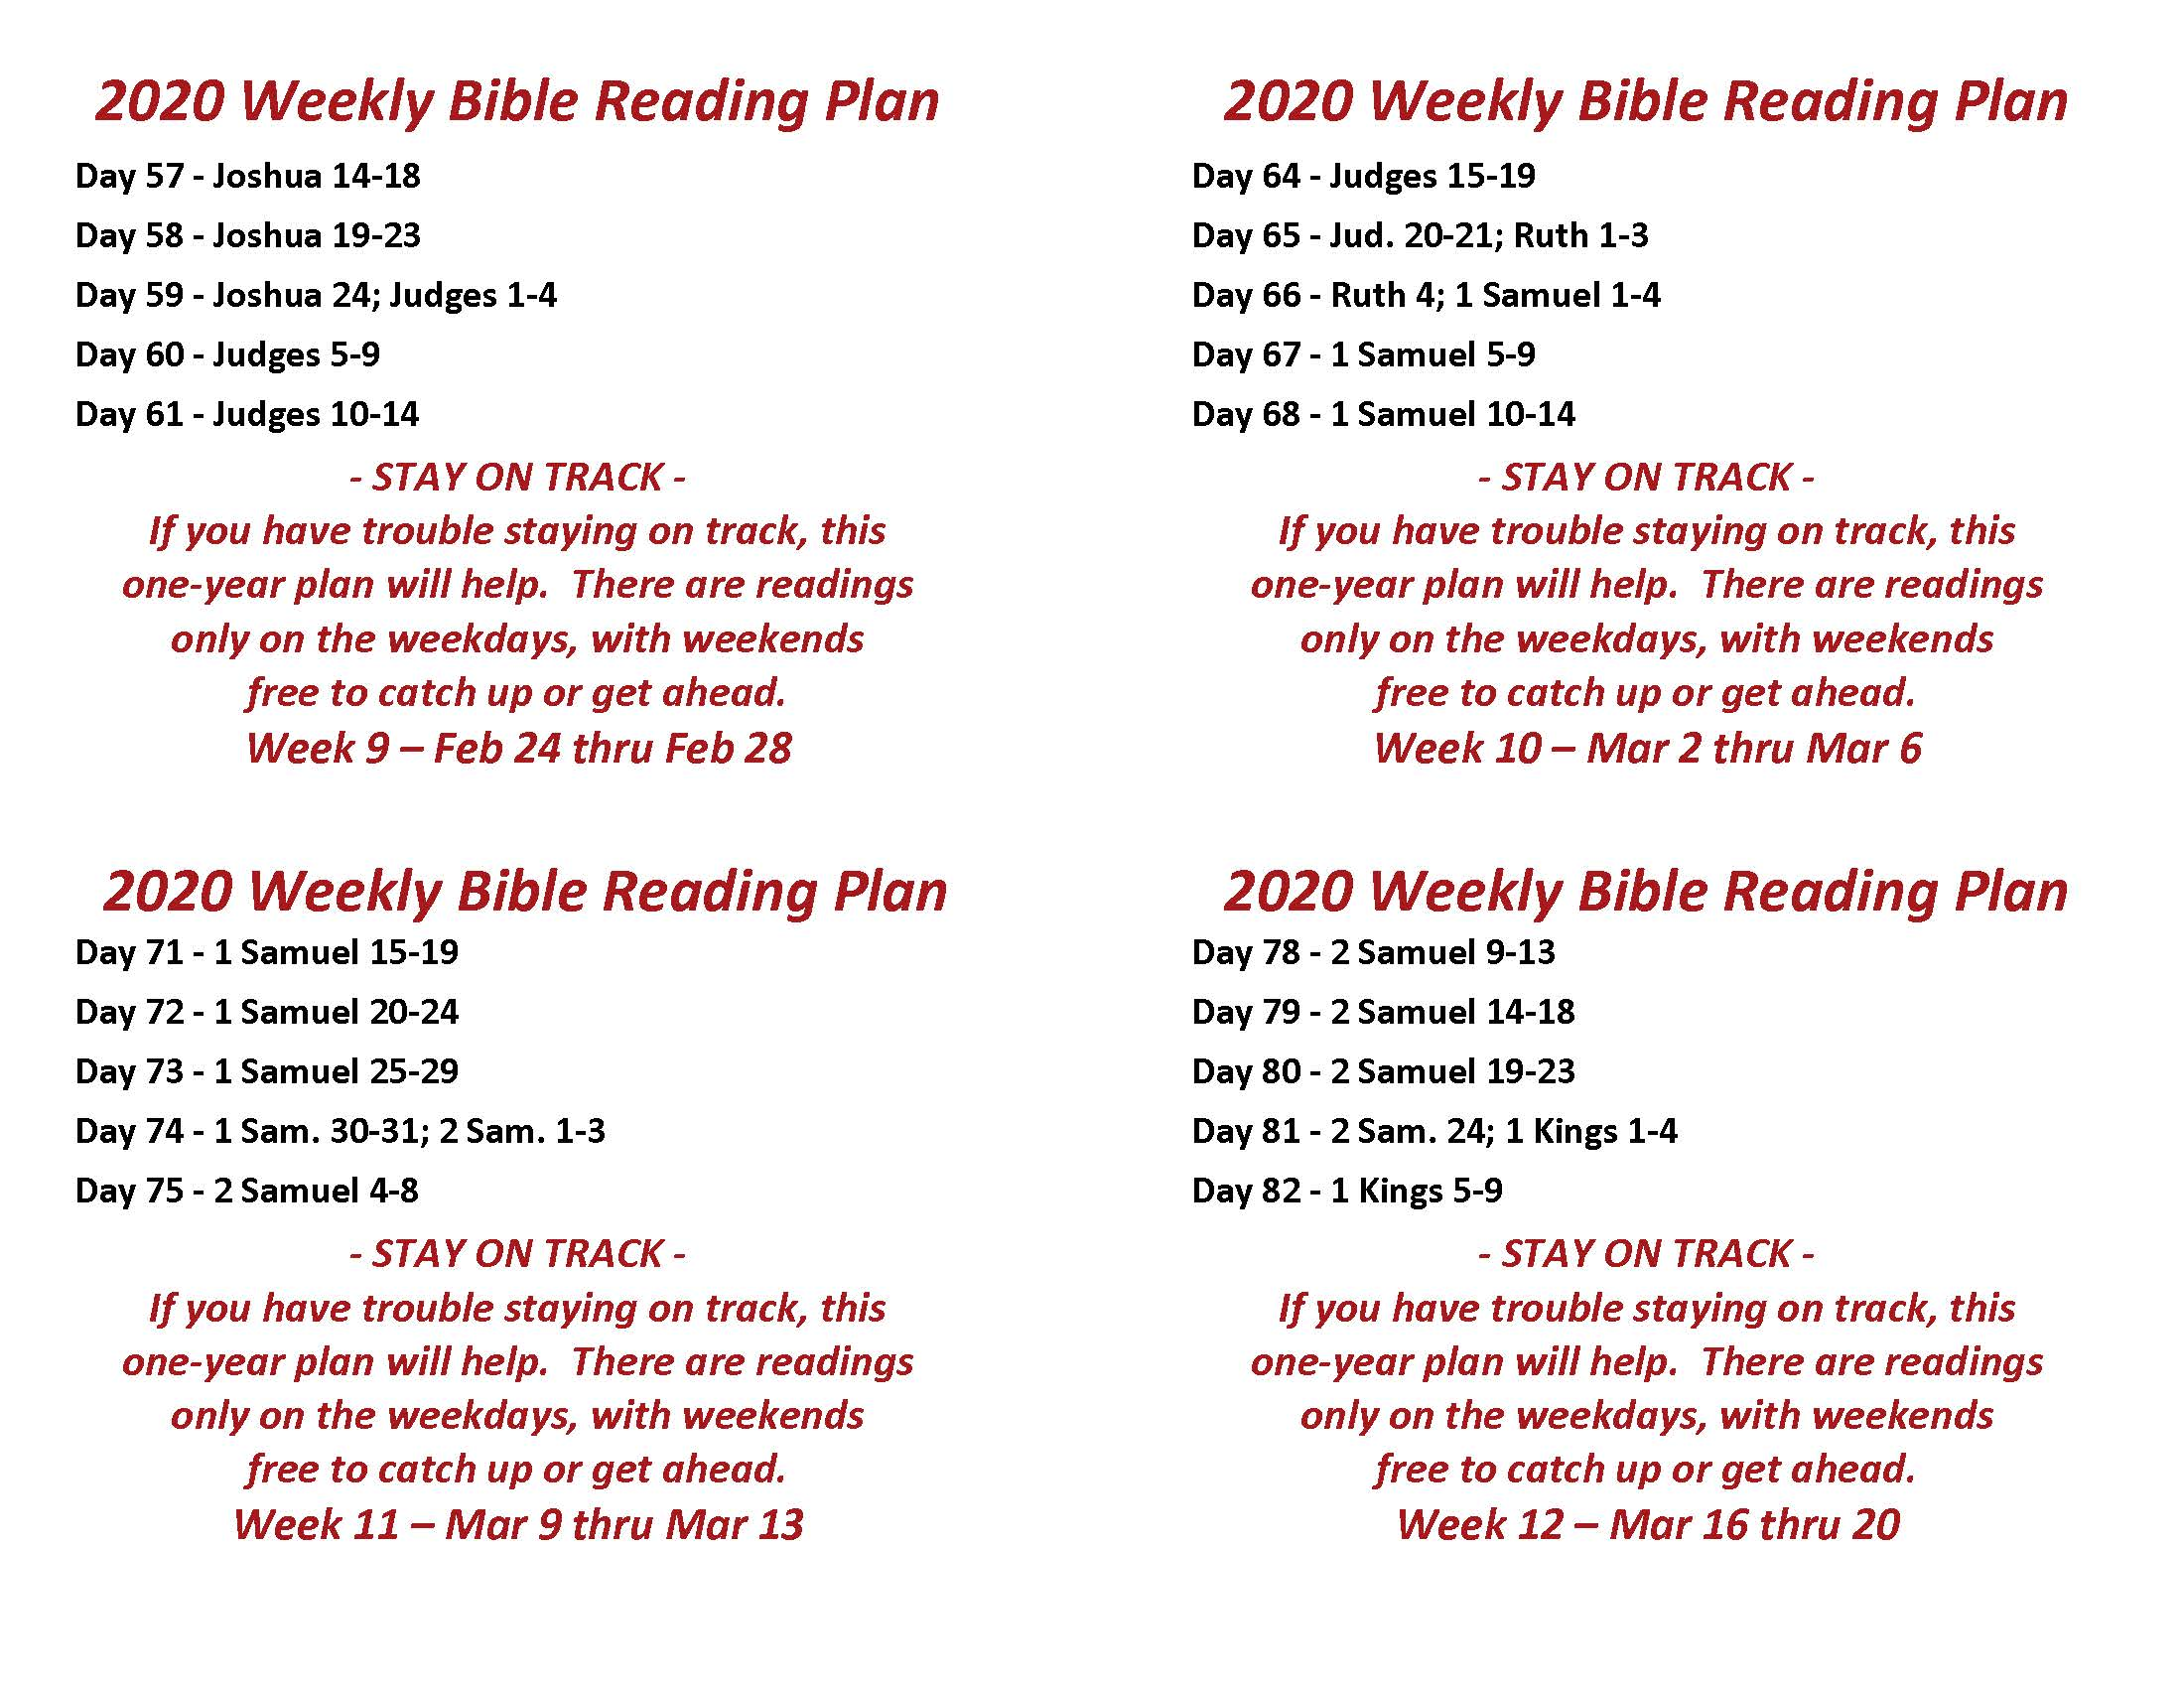 Read the Bible Through in a Year Feb 24 thru Mar 20